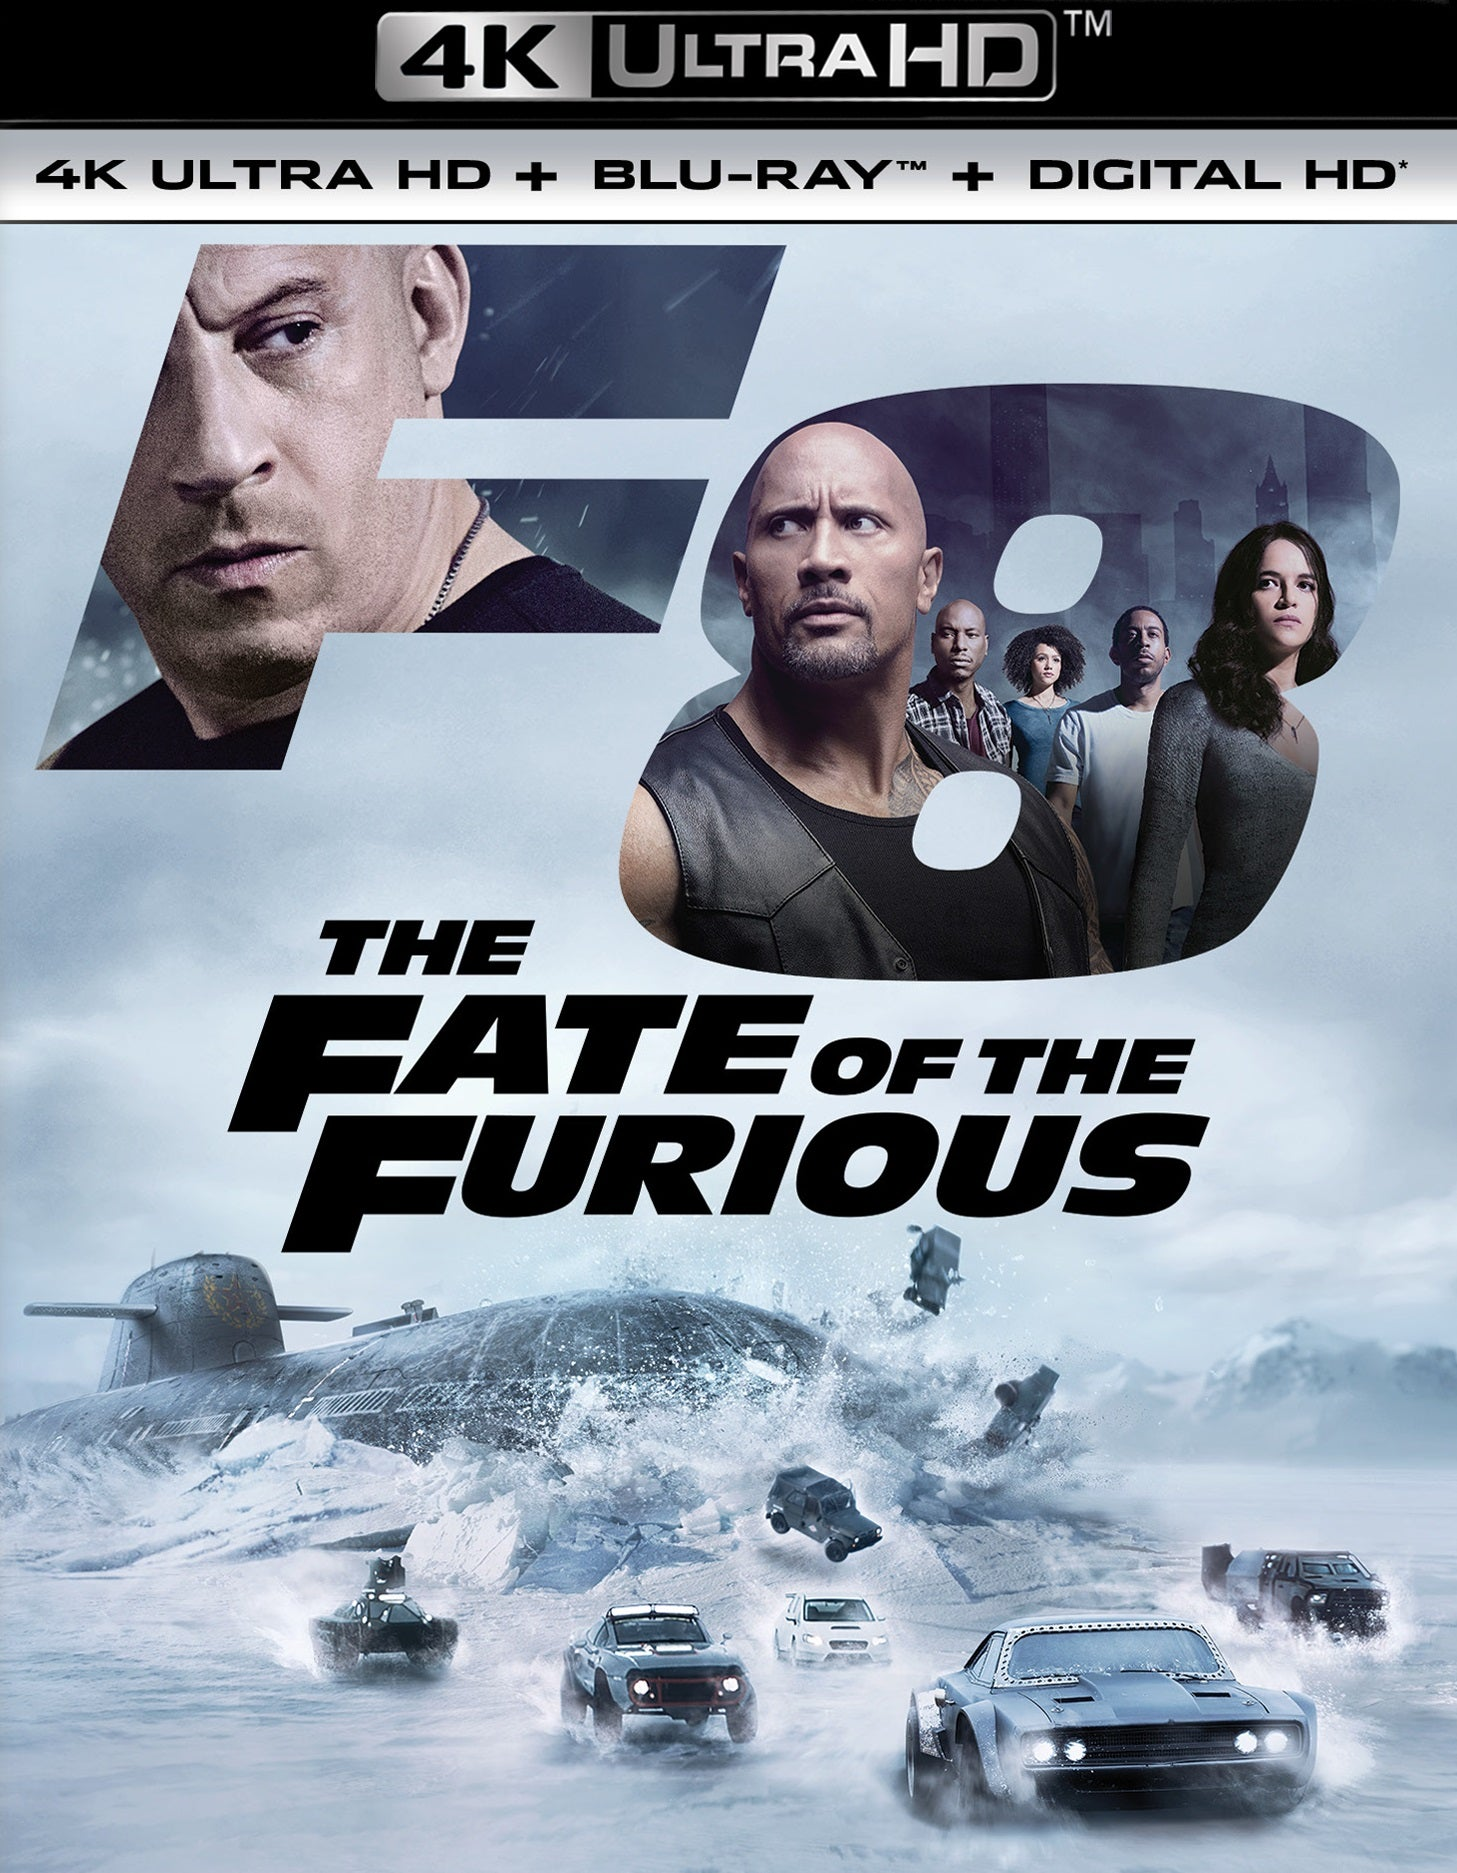 The Fate of the Furious (Theatrical) 4k